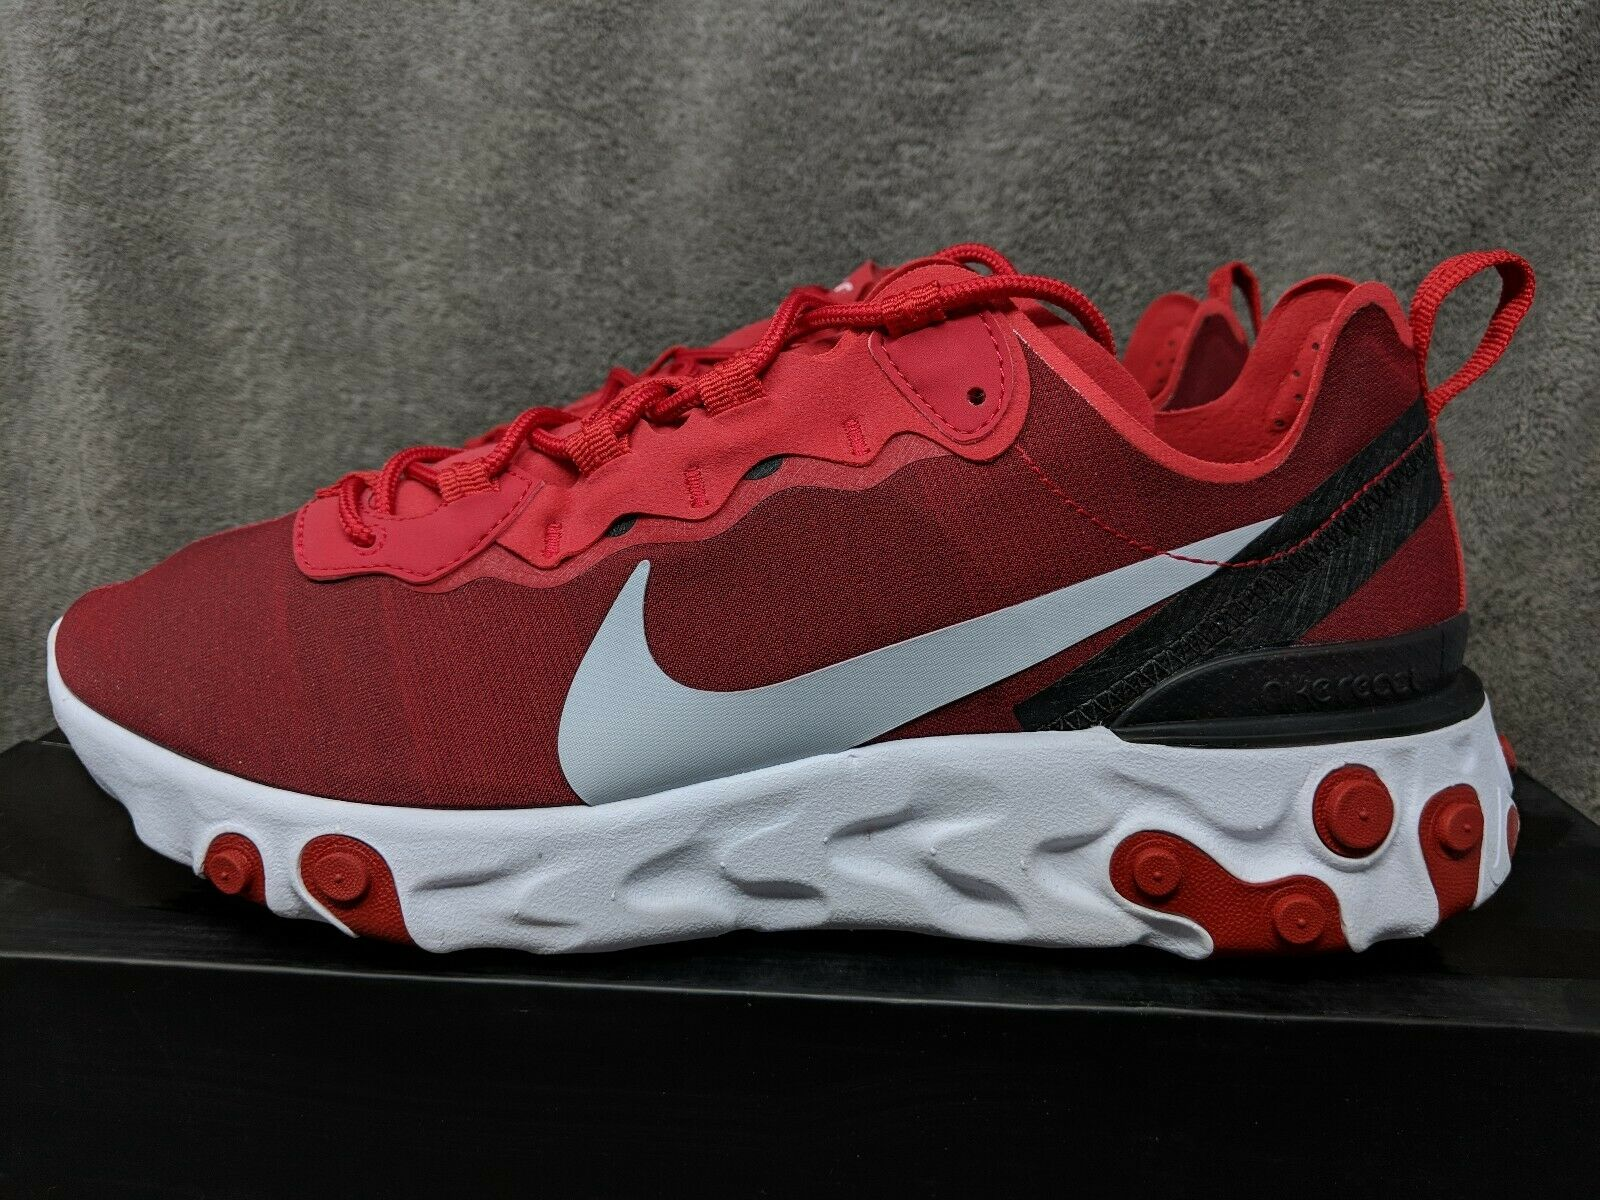 02829fd396 Nike React Element 55 14 Gym Red White Black Wolf NEW Men's  Grey(BQ6166-601) nzvgkh23-Athletic Shoes